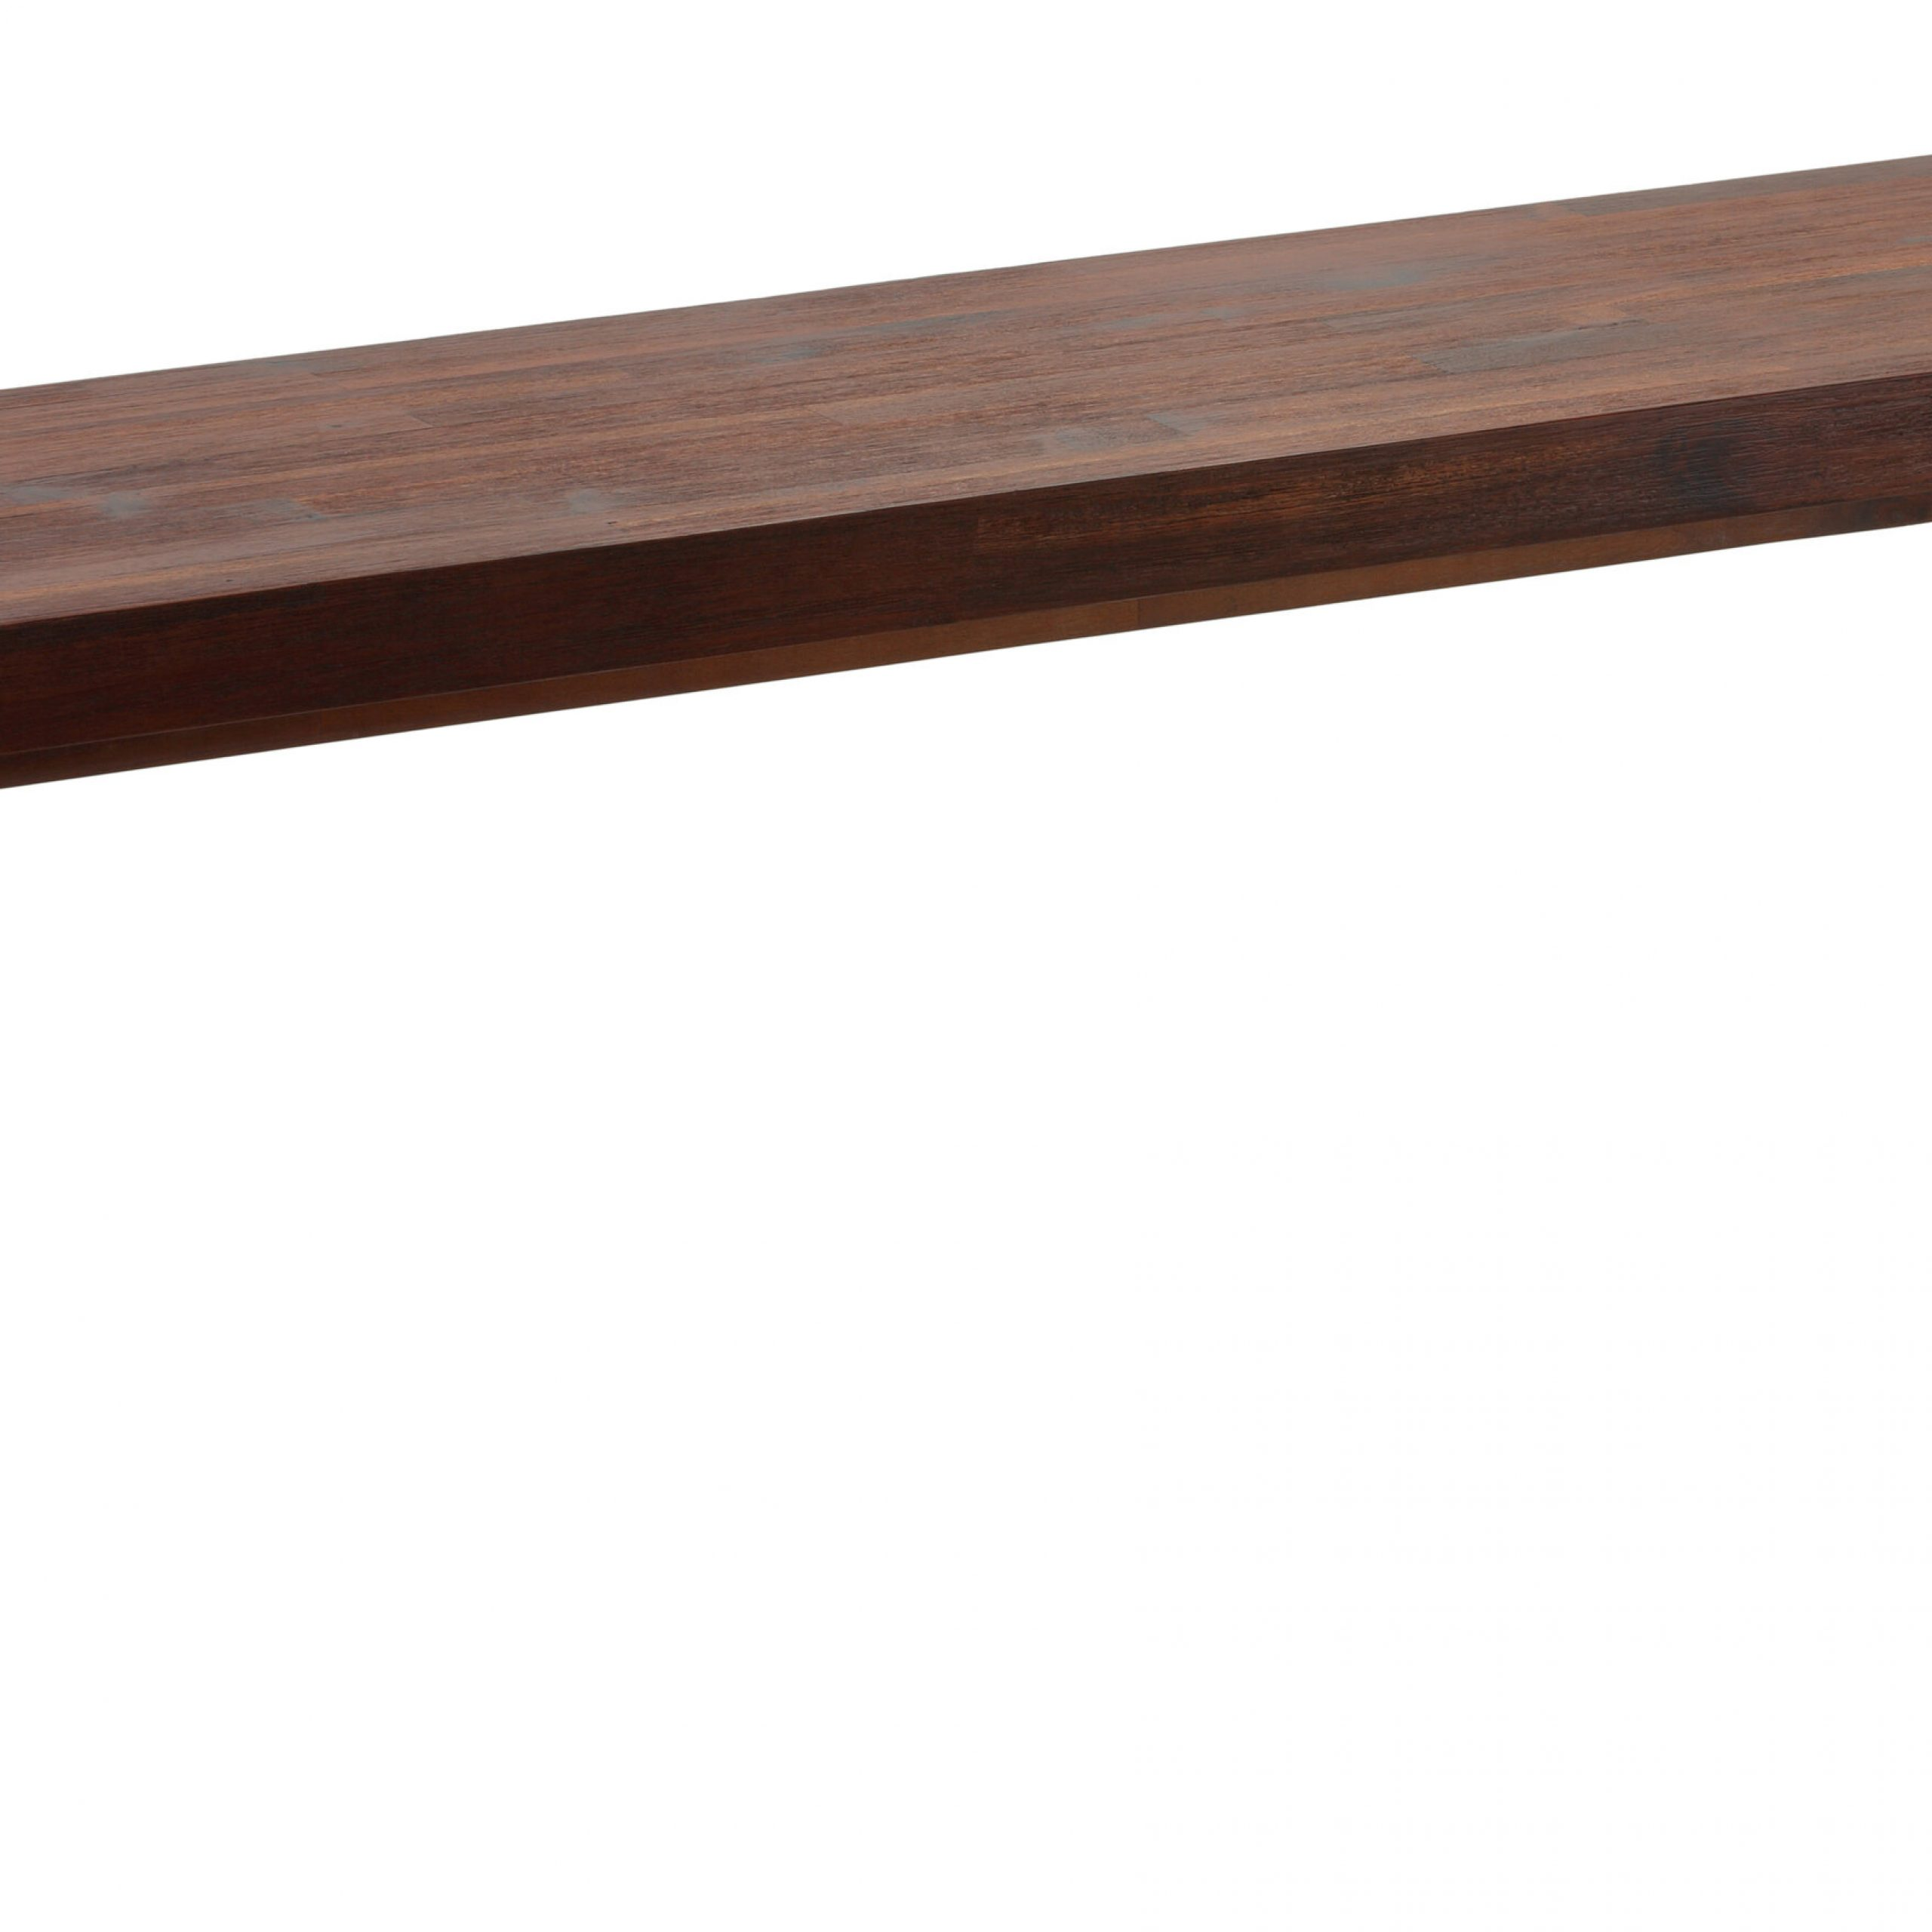 Hebden Solid Wood Bench Pertaining To Walnut Solid Wood Garden Benches (View 5 of 25)